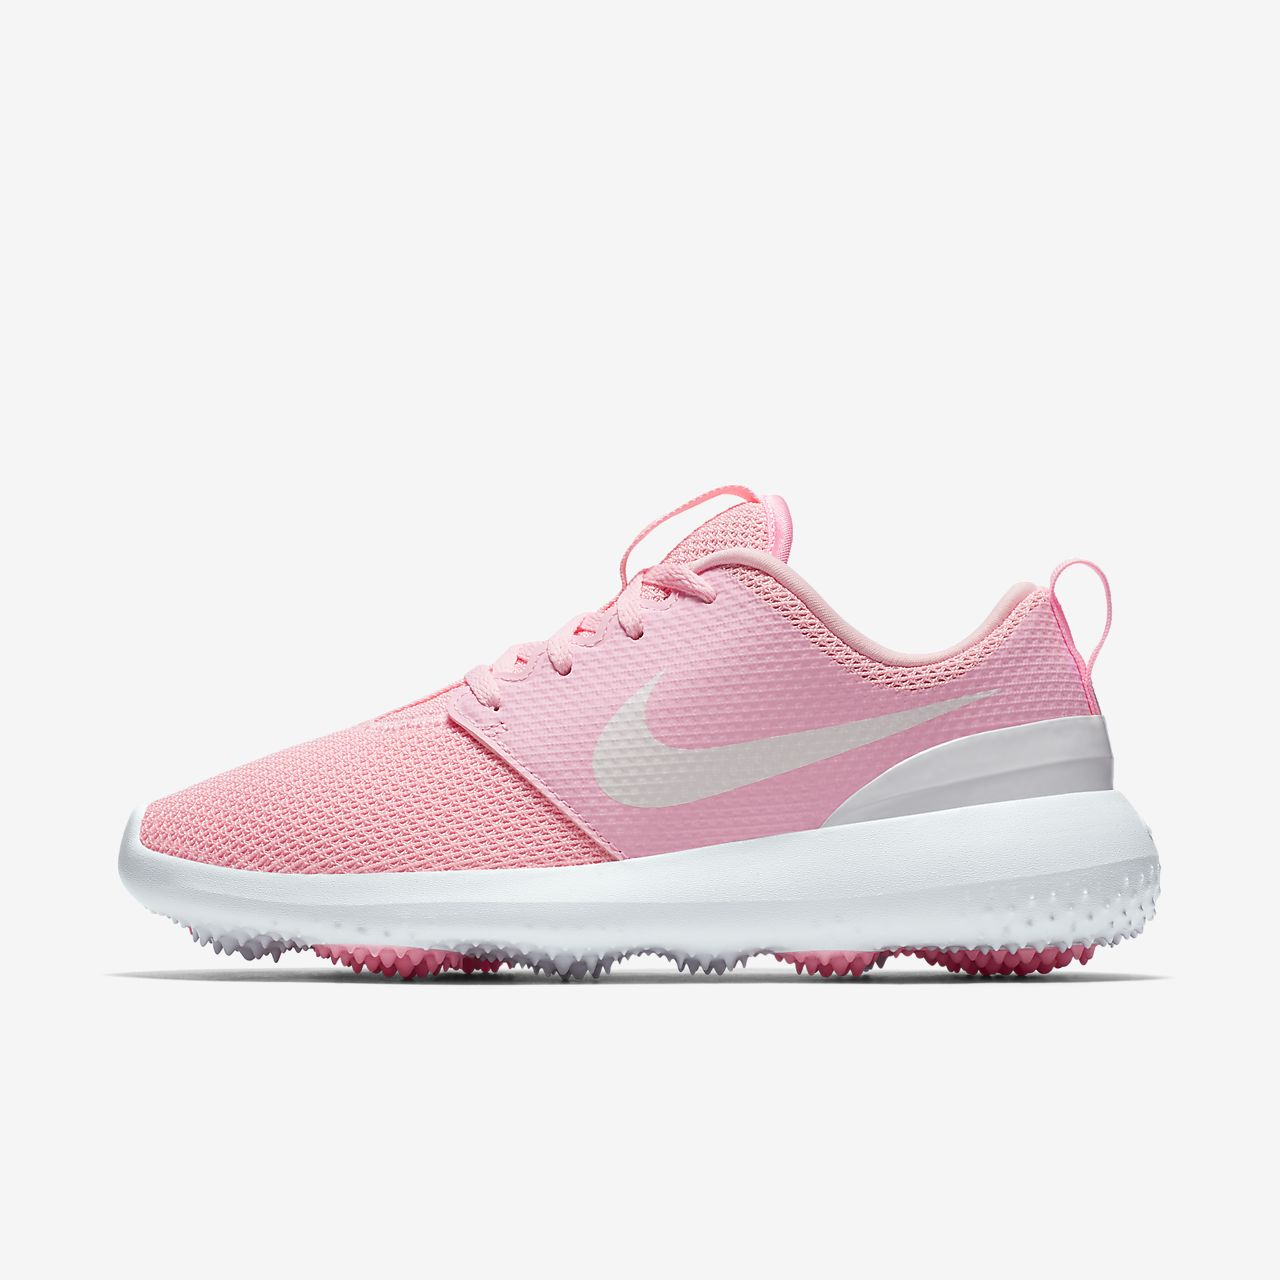 nike free 5.0 v4 womens reviews of womens golf clubs